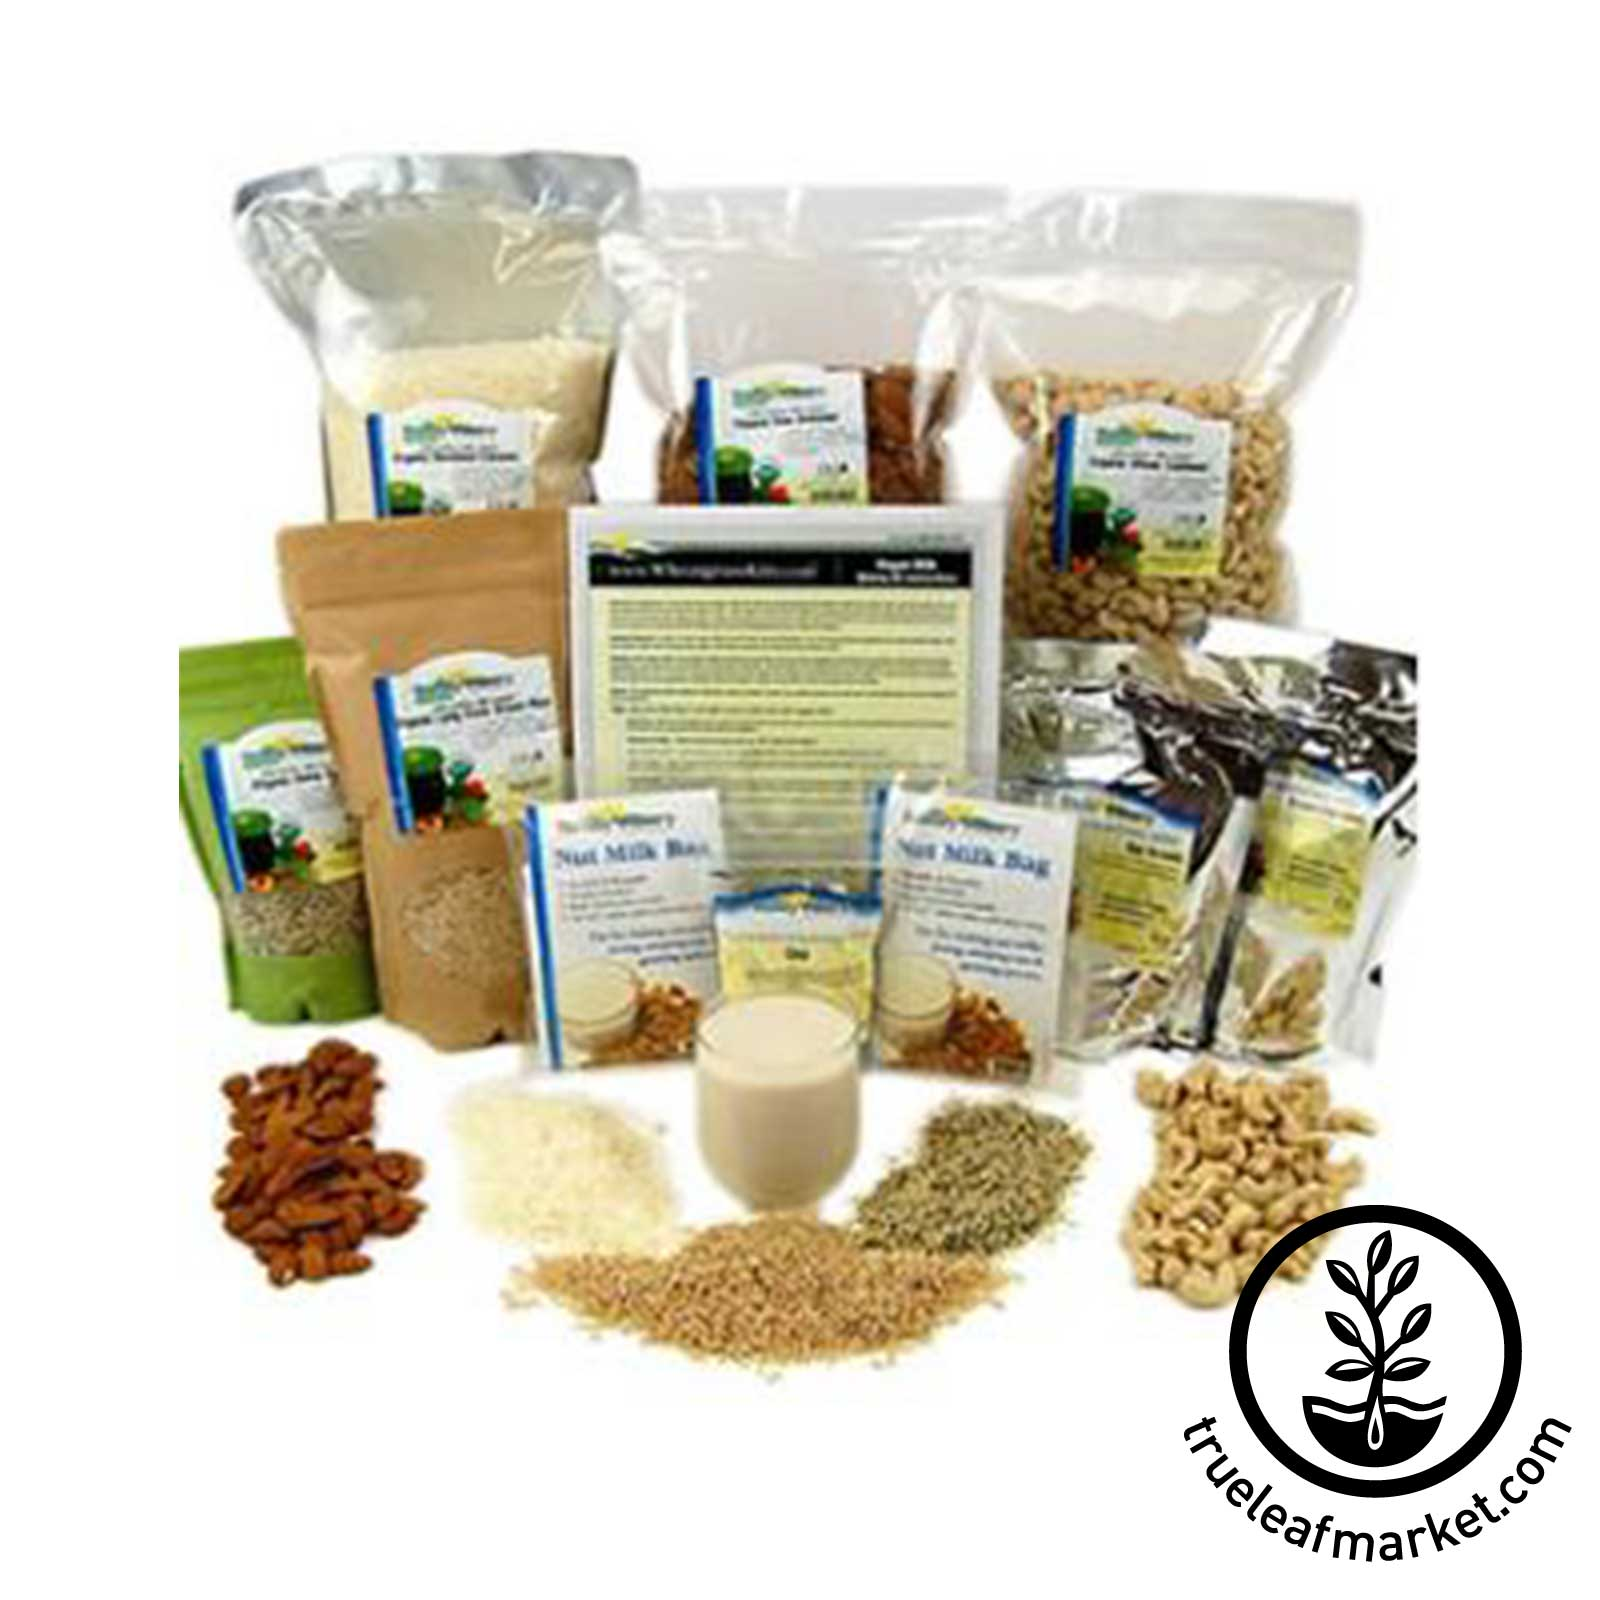 Deluxe Vegan Milk Kit - Organic vegan milk, nut milk, non dairy, vegan milk making, deluxe kit